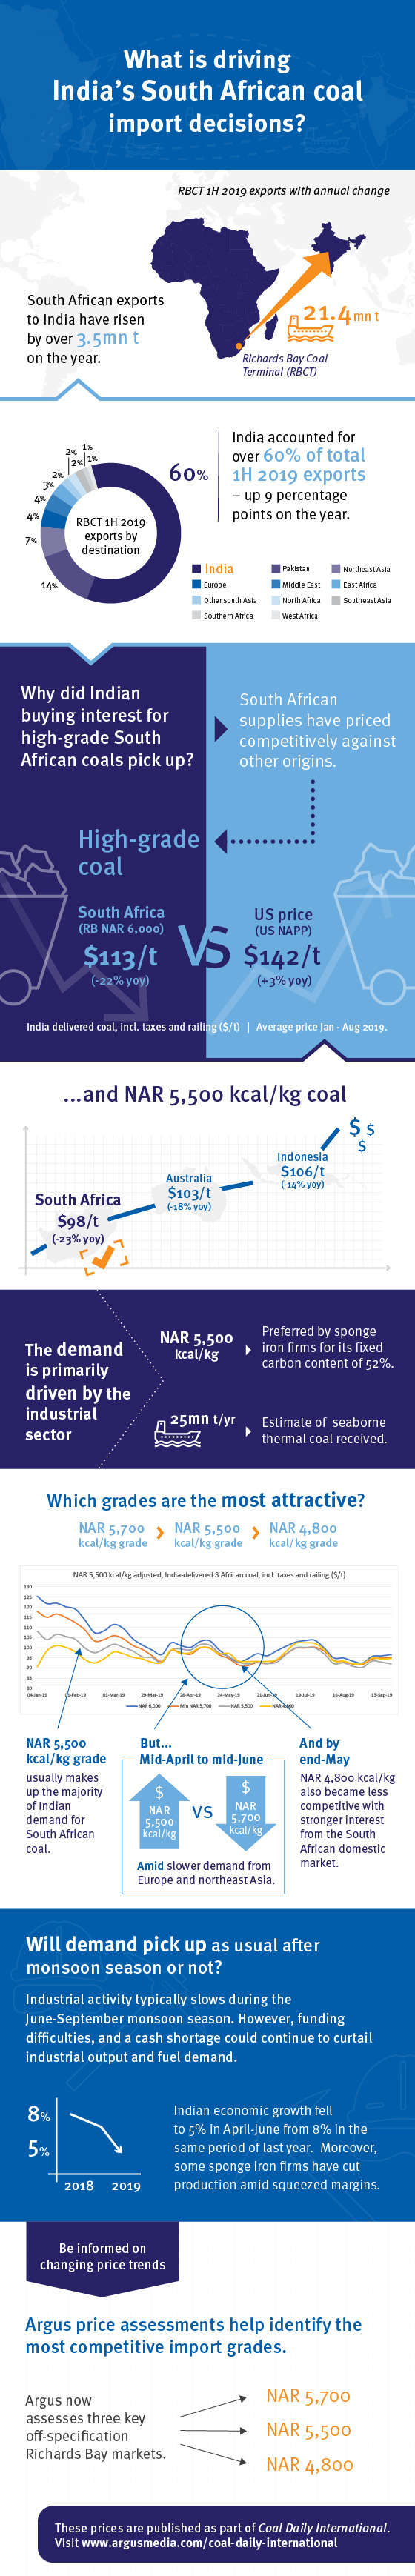 Infographic: What's driving India's South African coal import decisions?